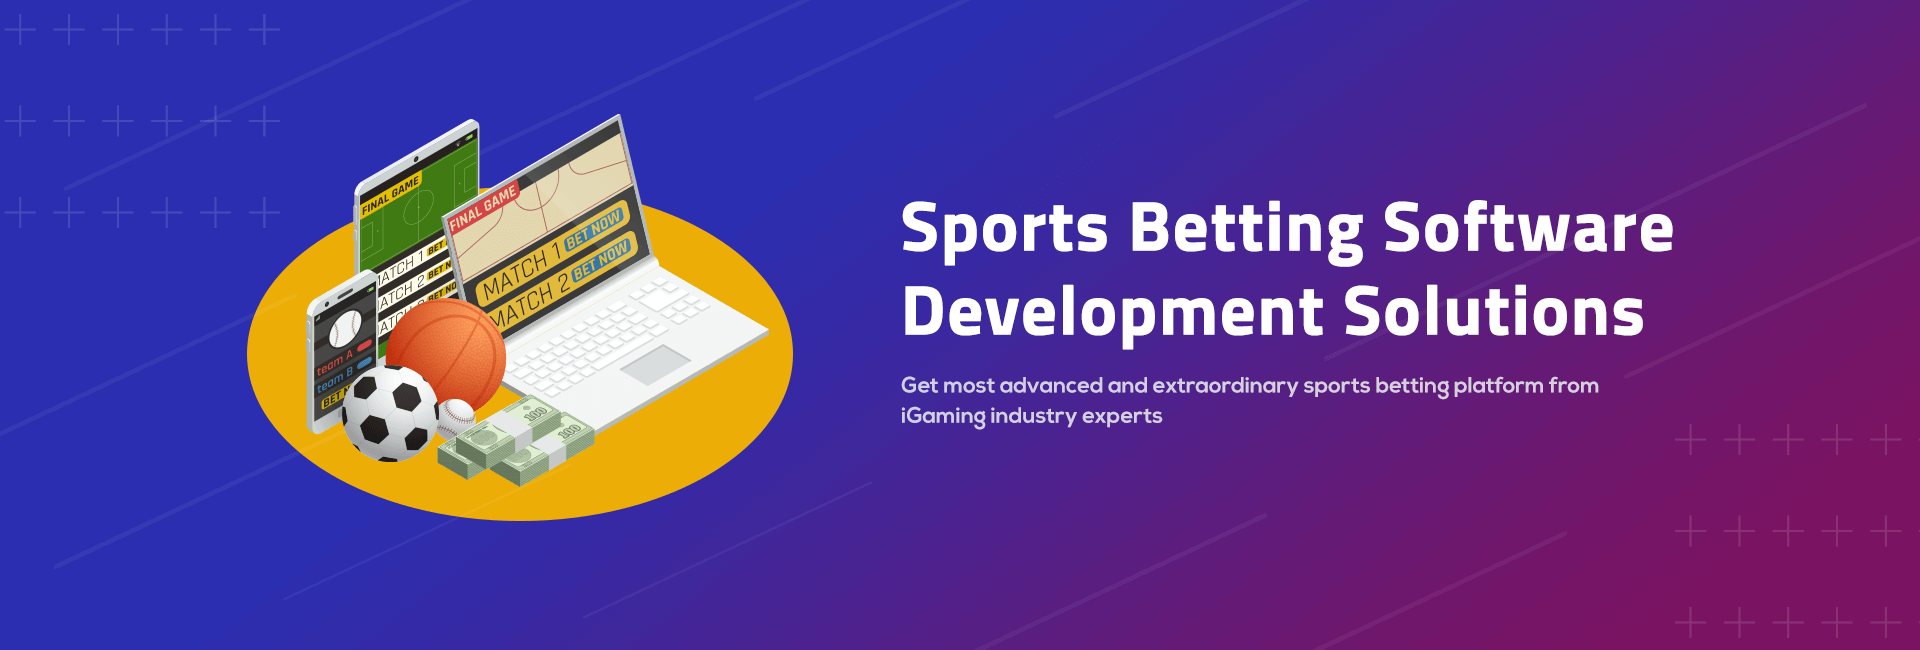 Dedicated Sports Betting Software Development Company